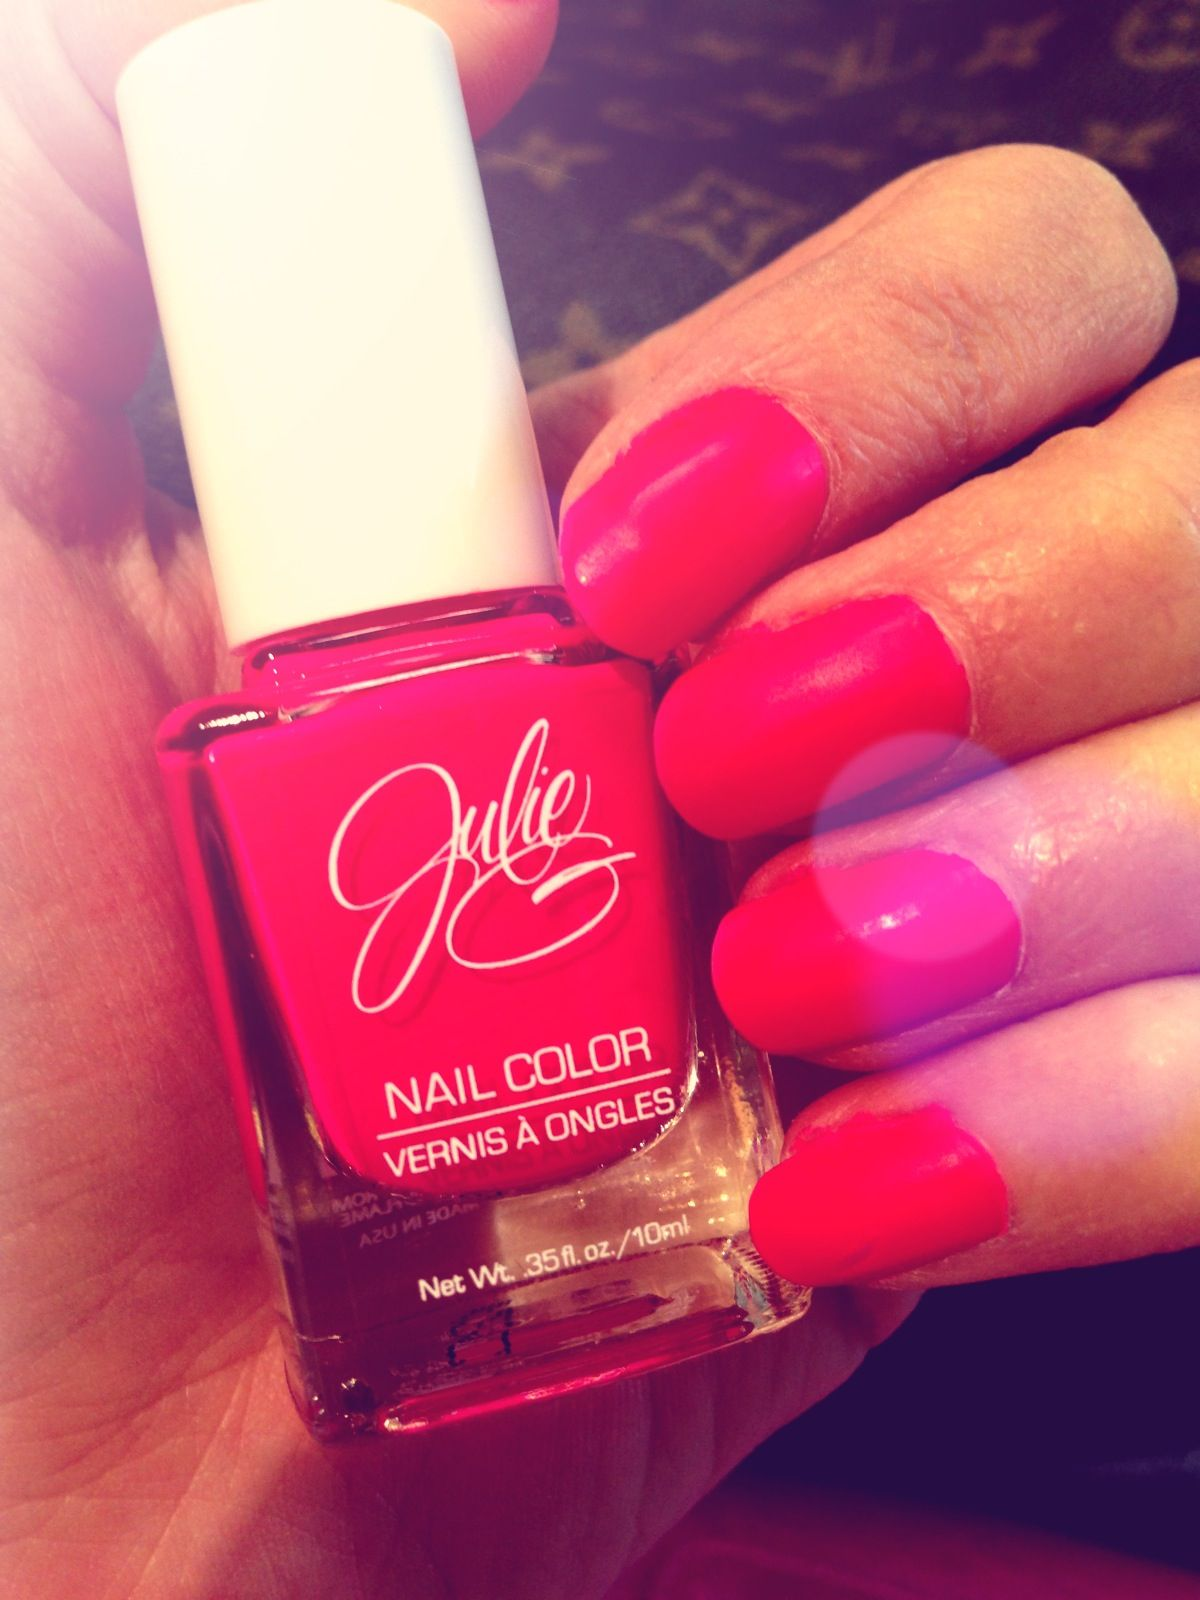 Oh Em Gee! by JulieG Nail Polish. Sold at Rite Aid and ...